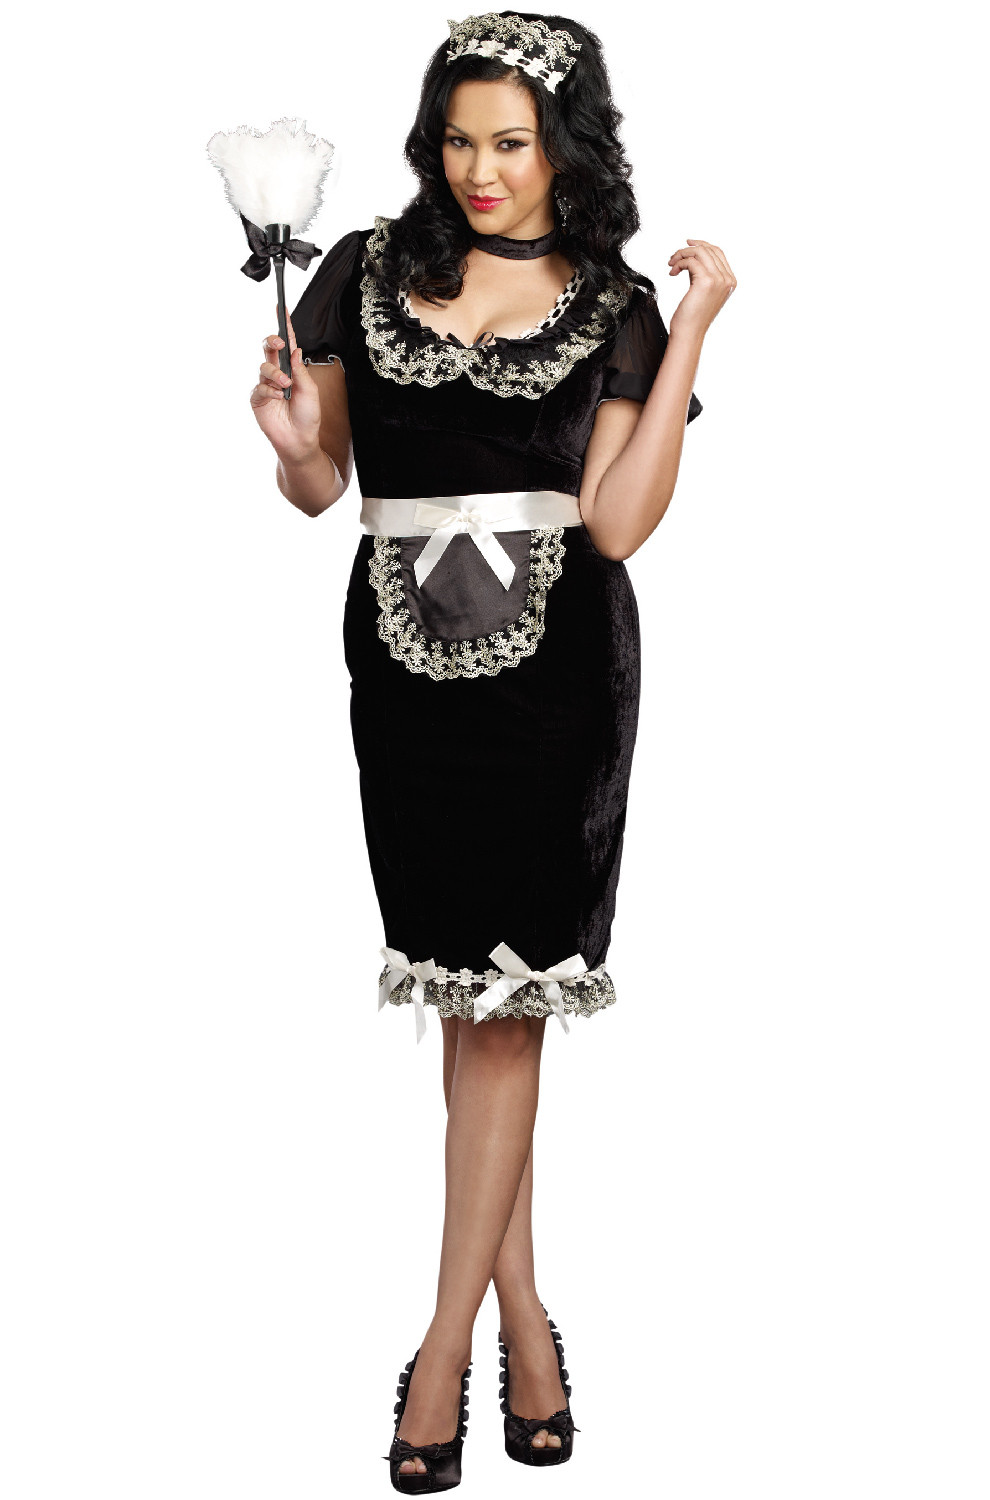 French Maid Costume DIY  Keep it Clean French Maid Plus Size Costume